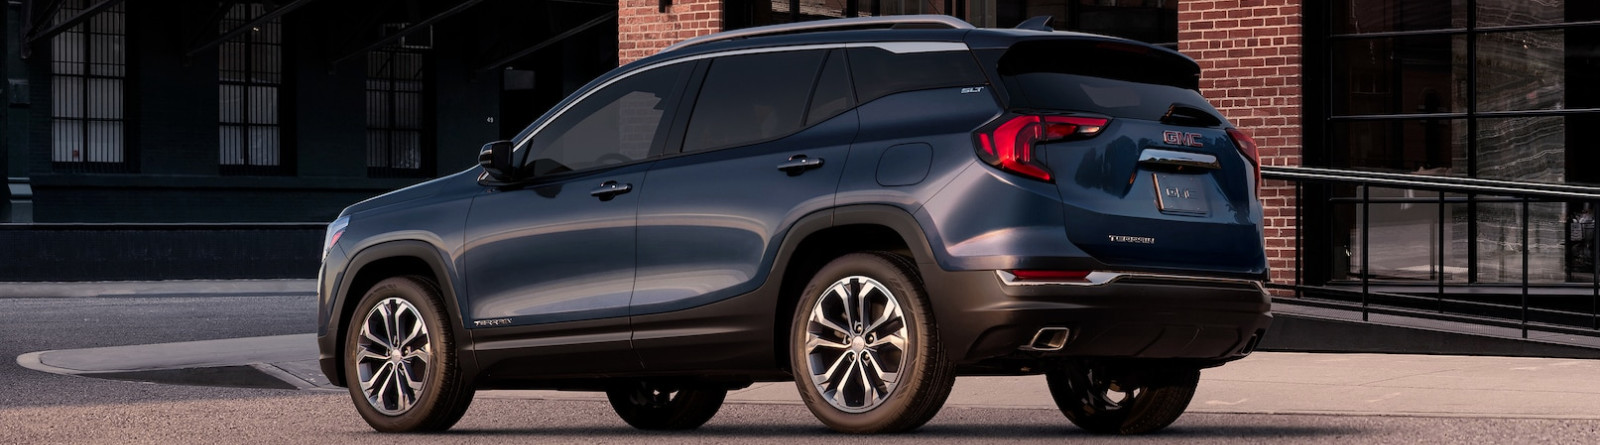 2018 GMC Terrain Awards in Youngstown, OH